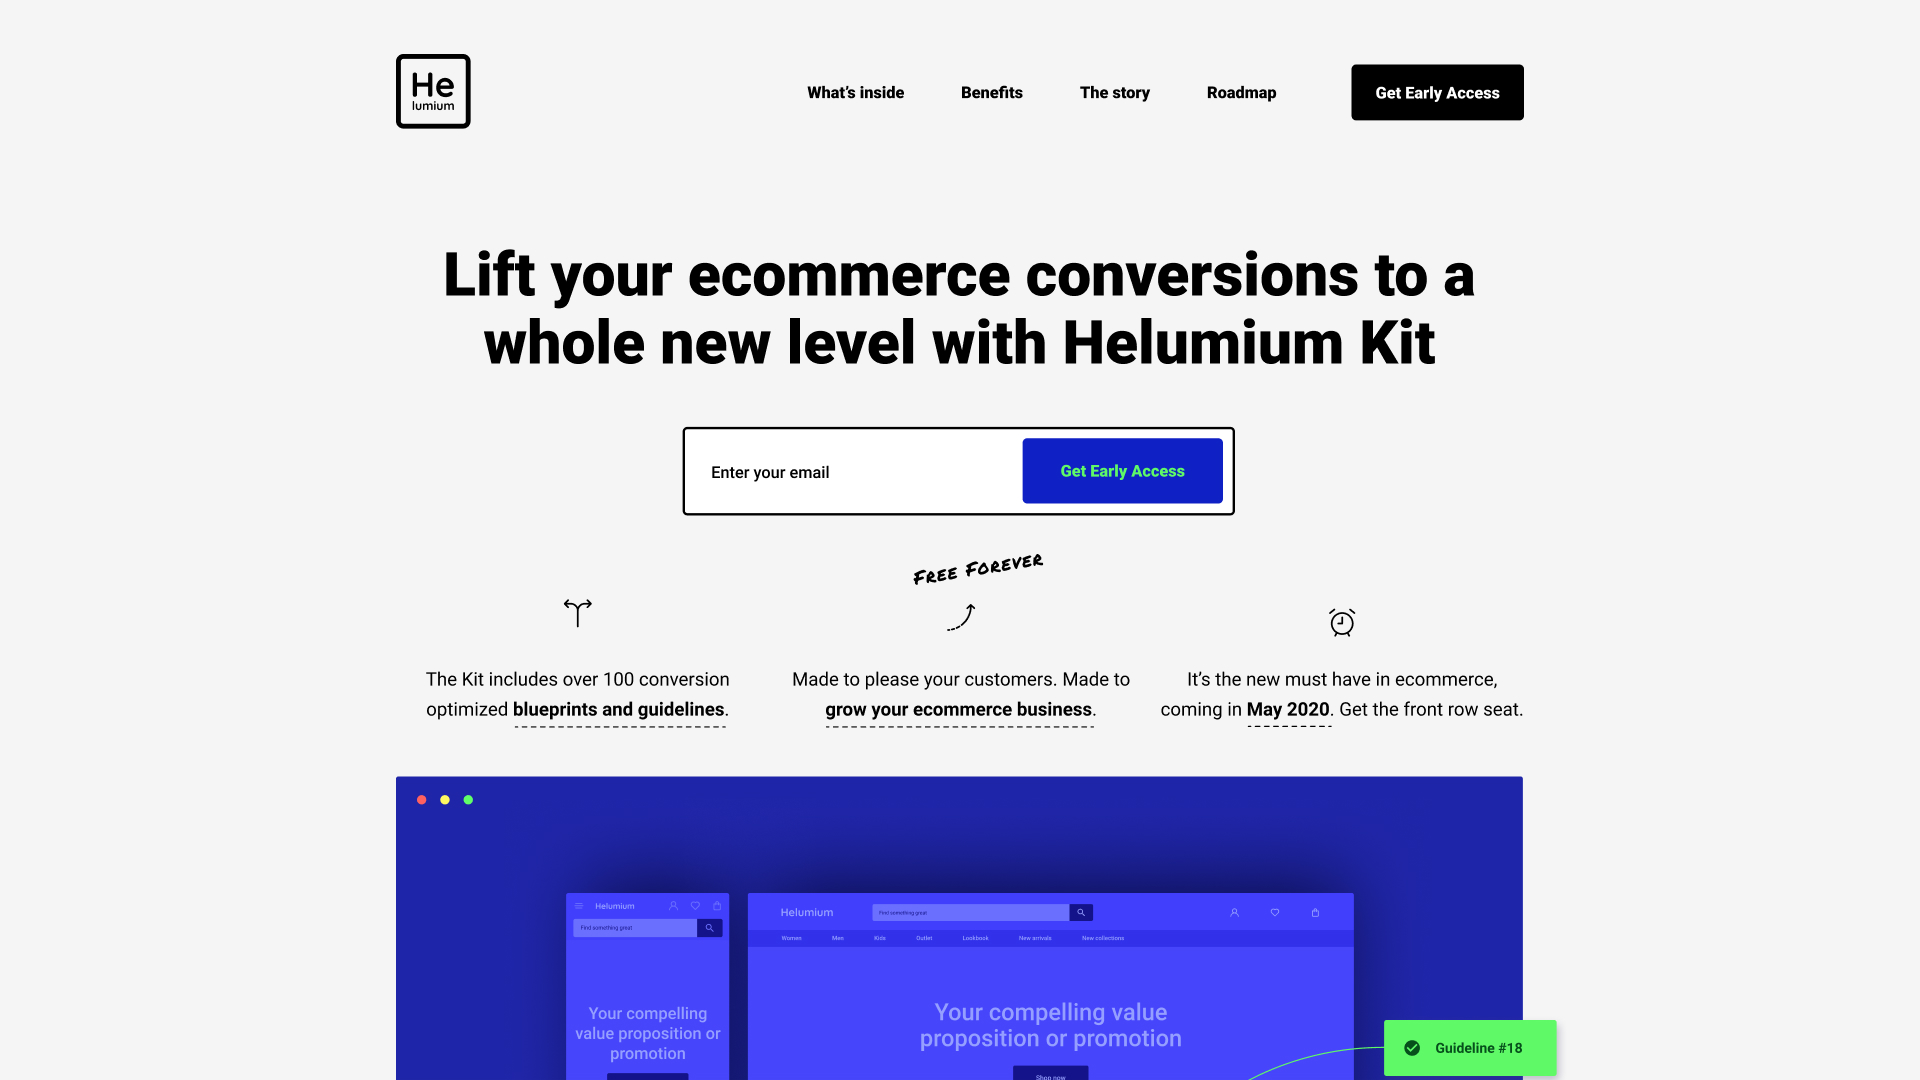 Meet Helumium, world's first ecommerce growth kit that is stuffed with battle-tested and data-backed blueprints and guidelines. And it's free.